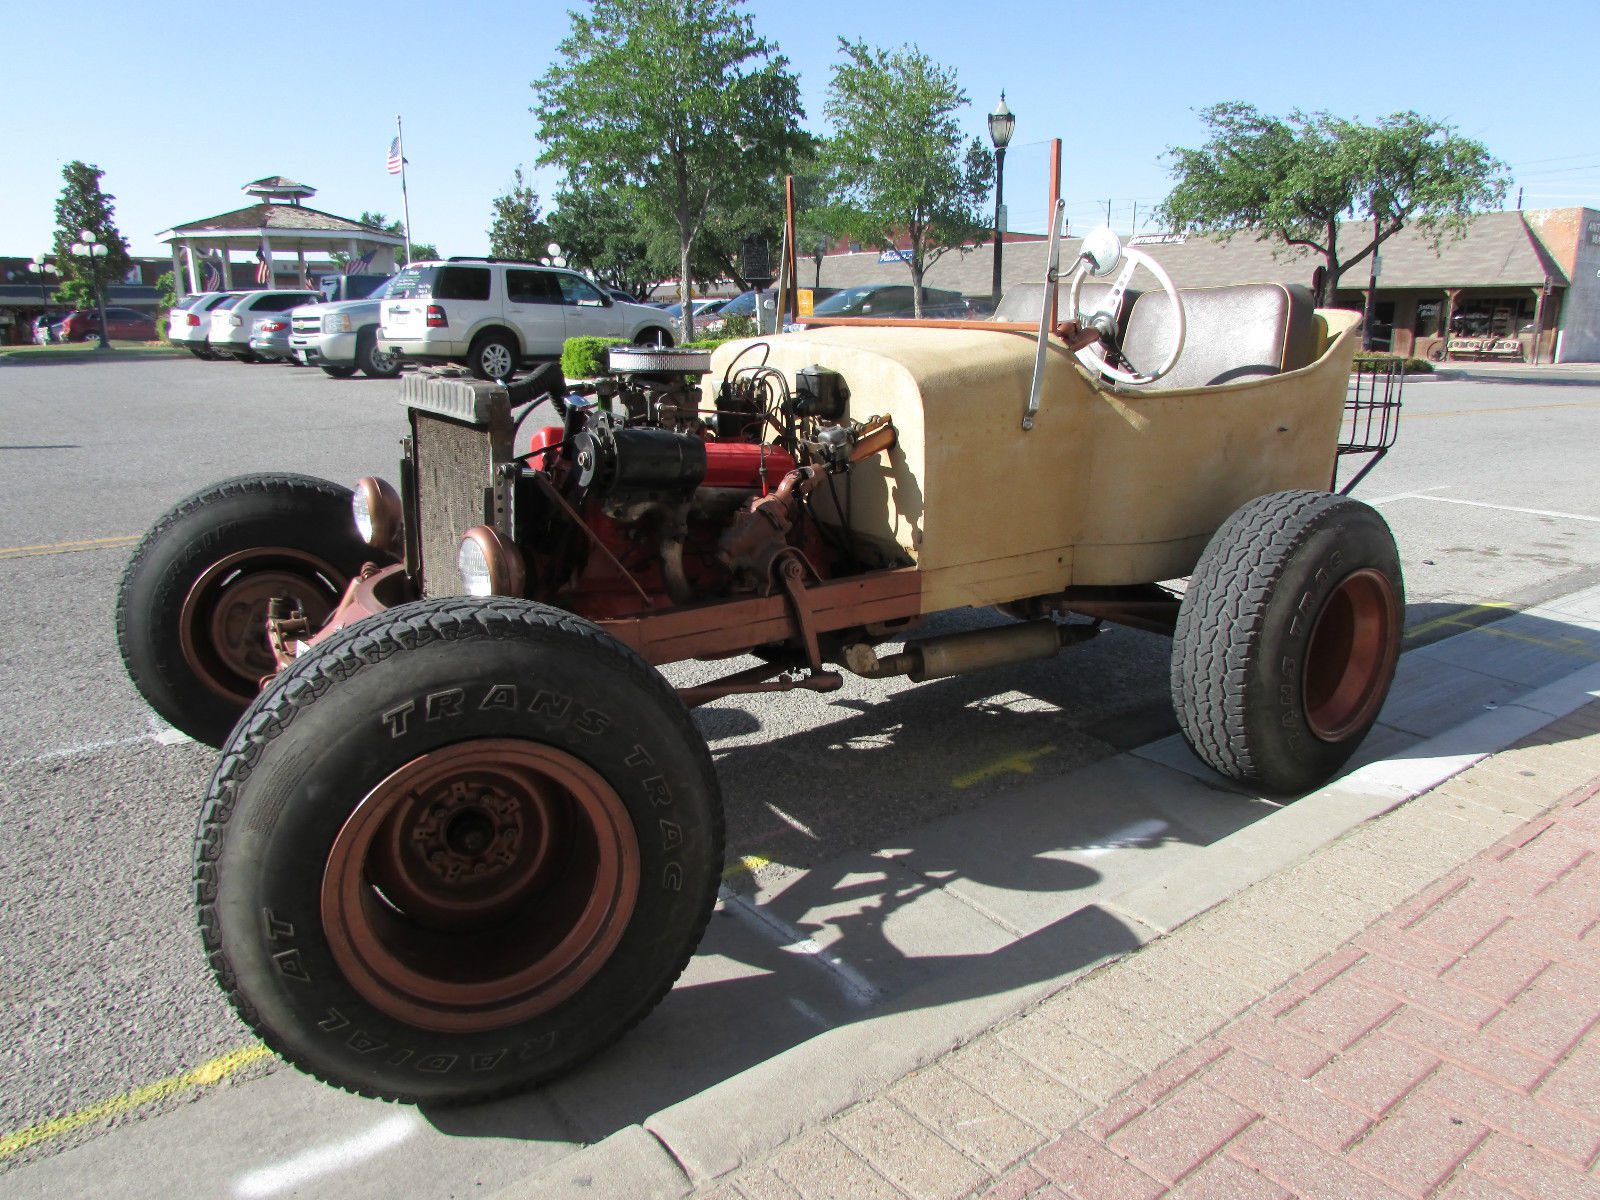 eBay Find: This Sand Buggy Was Built In 1965 And Is A Perfectly Preserved Piece Of Dune Running History